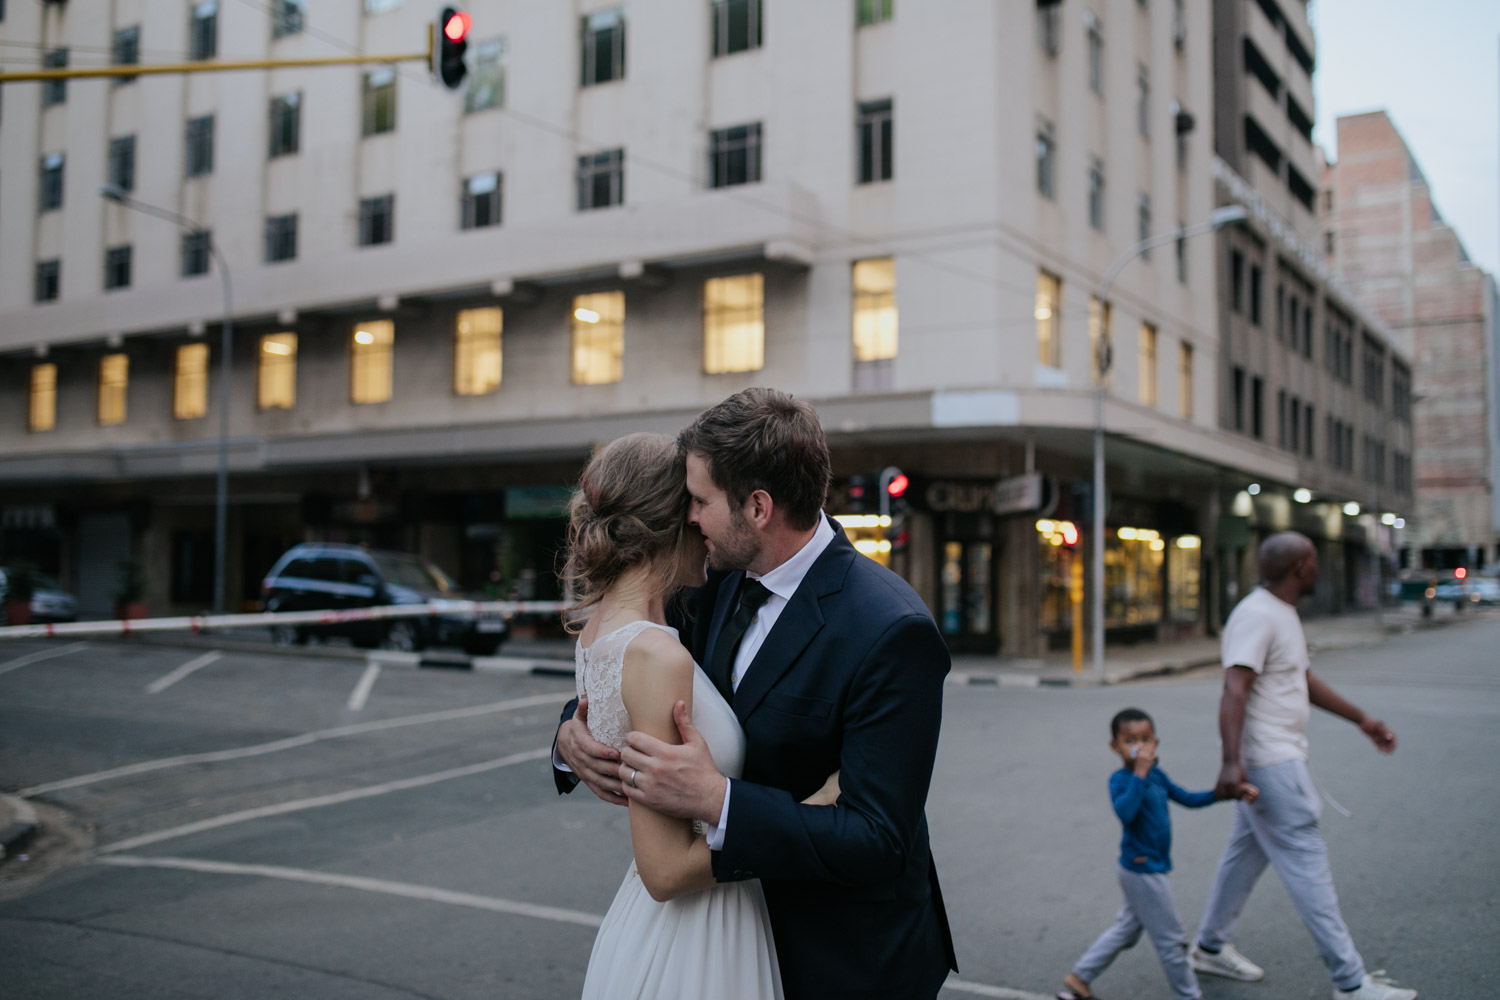 Alternative Wedding Photo Of Bride Holding Groom In Vancouver City As Pedestrians Walk Past